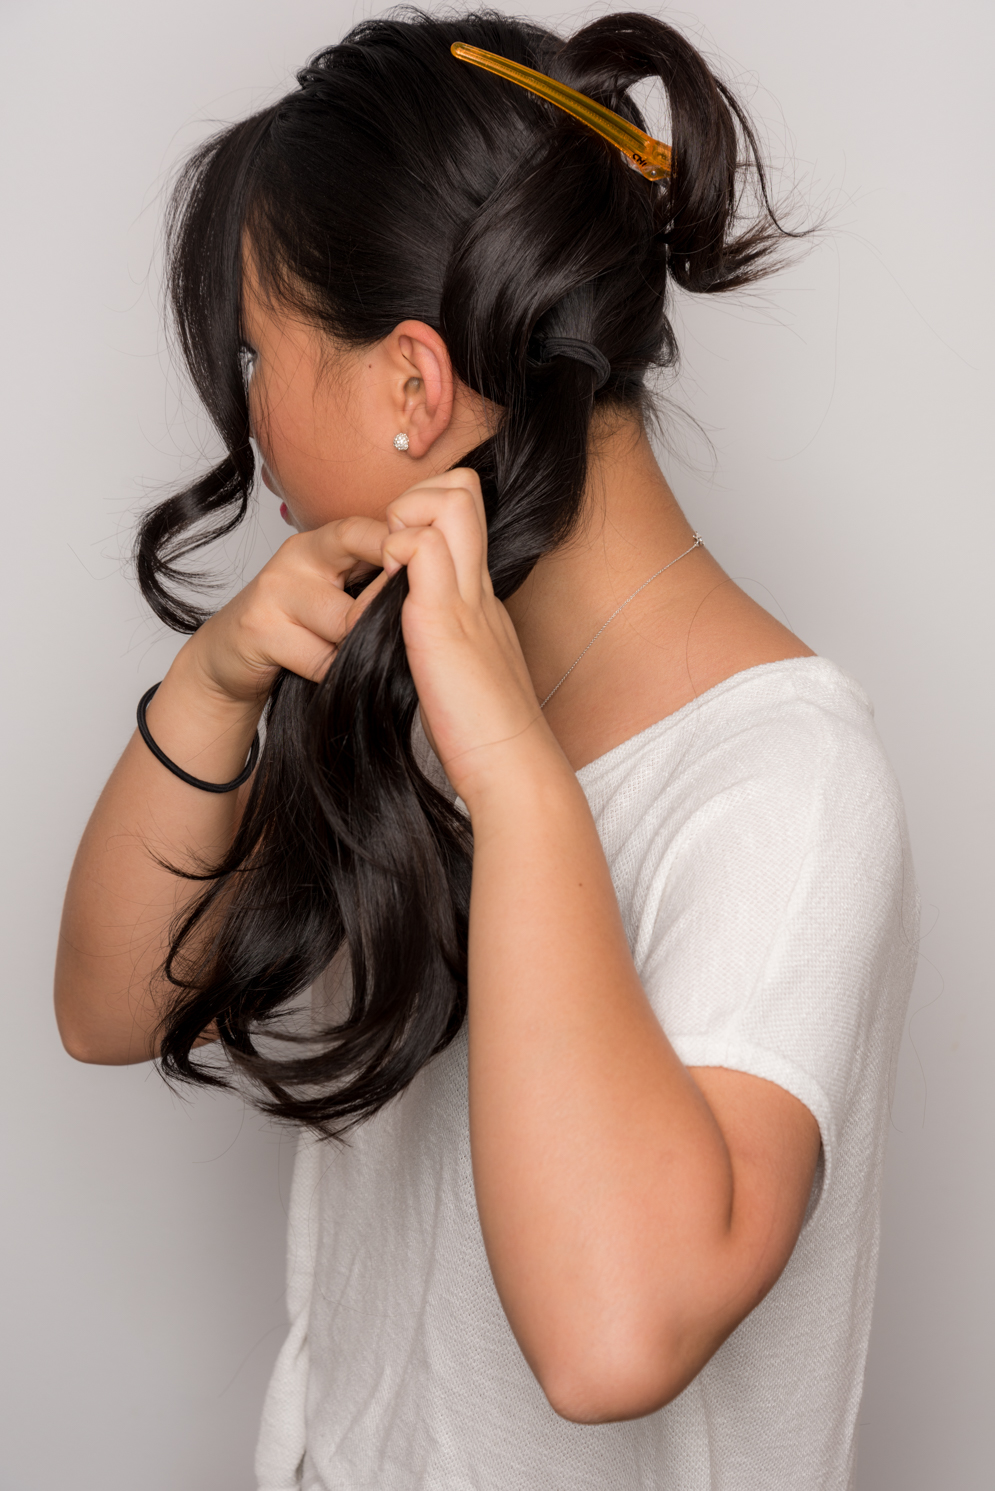 ROCK MAMA NYC LIFESTYLEBLOG-  HOW TO MAKE A EASY STYLISH SIDE BUN